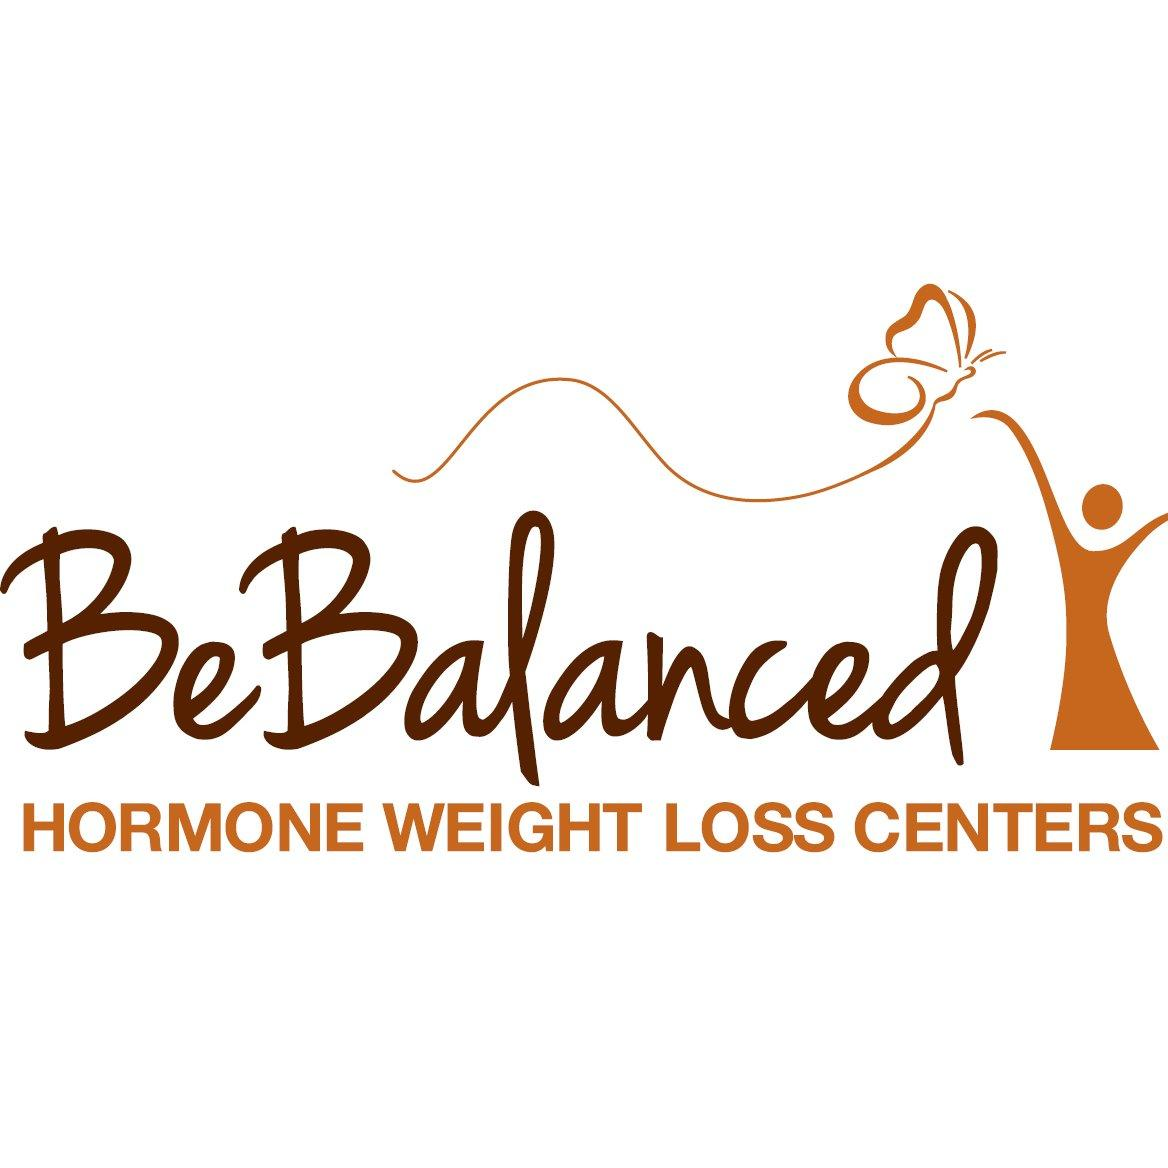 BeBalanced Hormone Weight Loss Centers - Wexford image 0